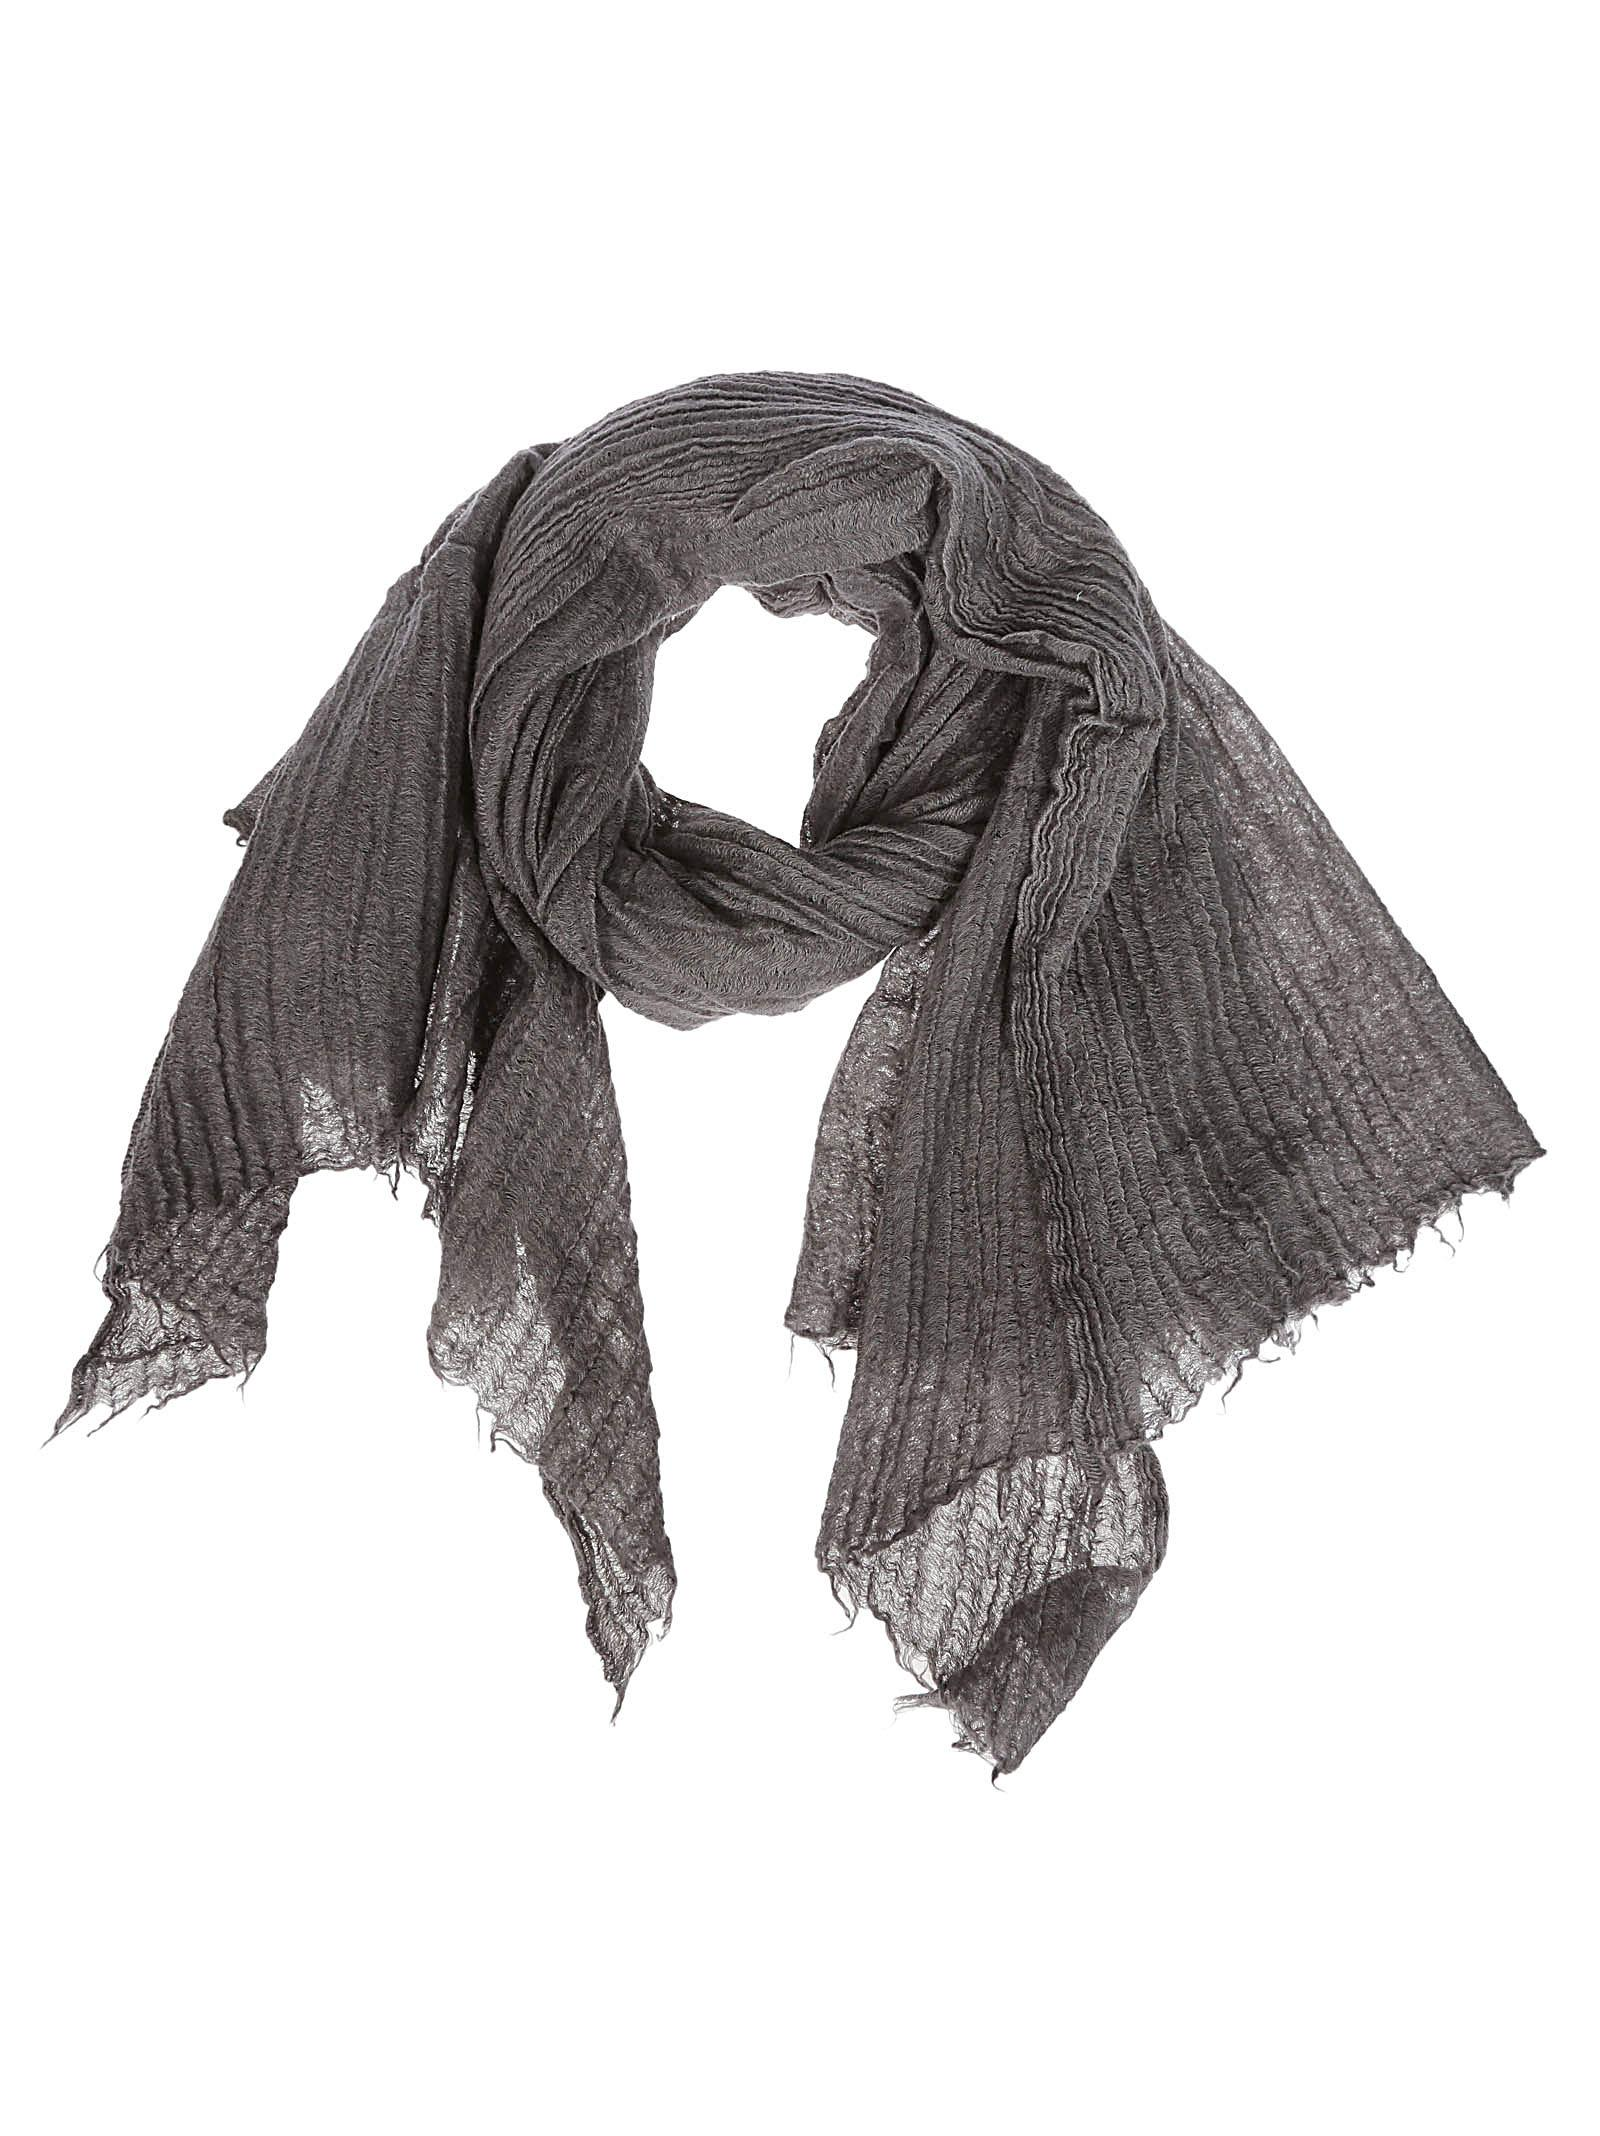 DESTIN SURL Destin Frayed Scarf in Grey